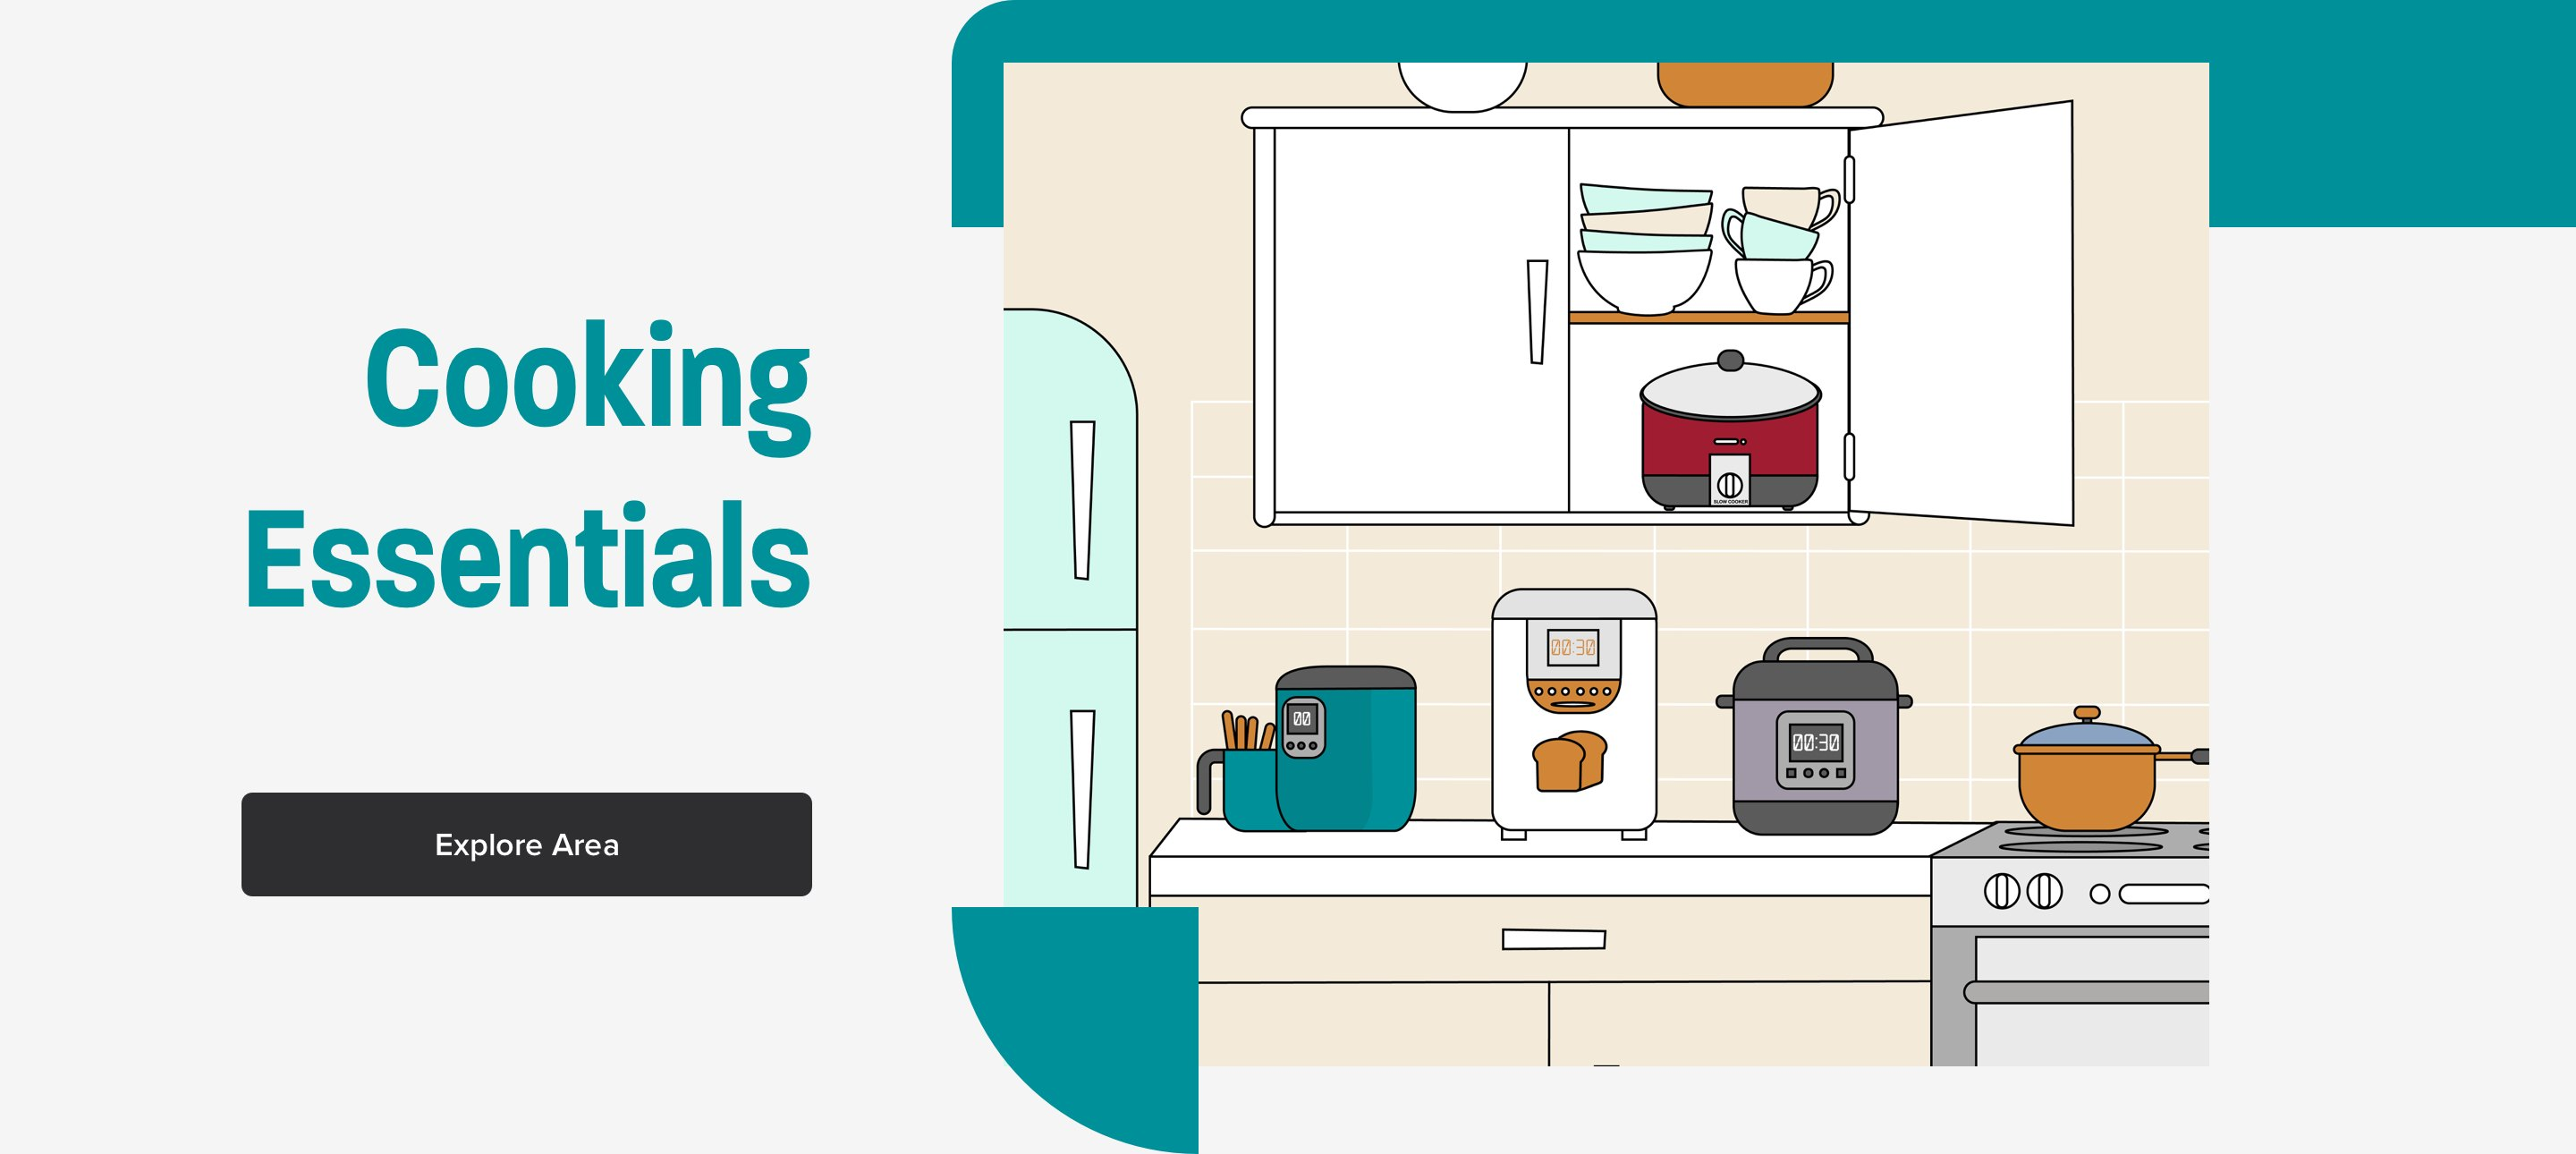 Cooking essentials section with cooking appliances